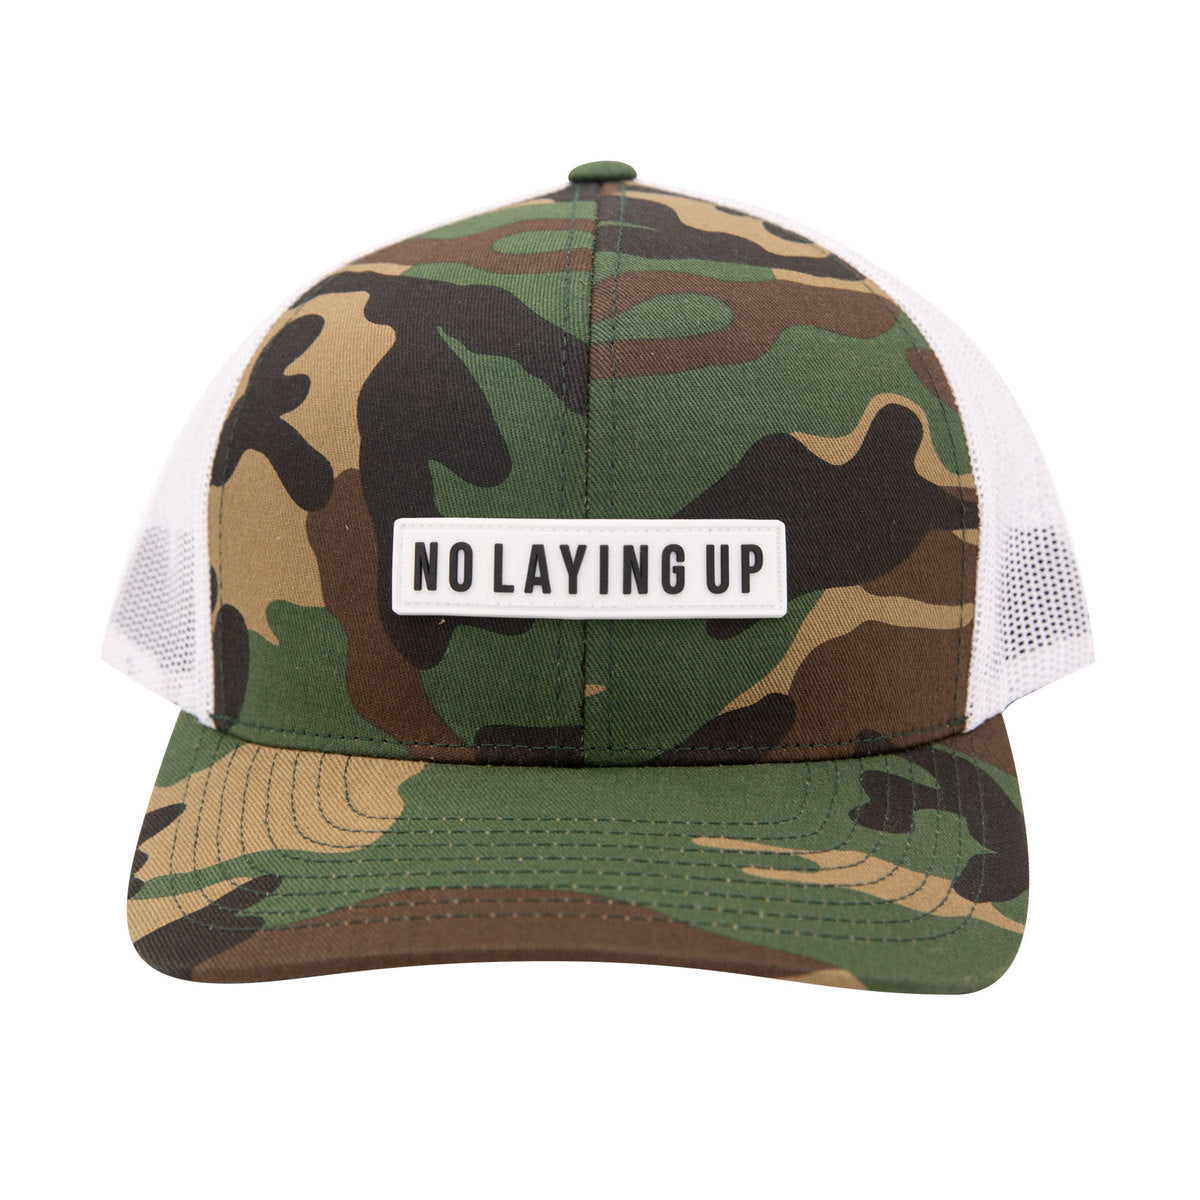 NLU White Patch Hat | Camo & White